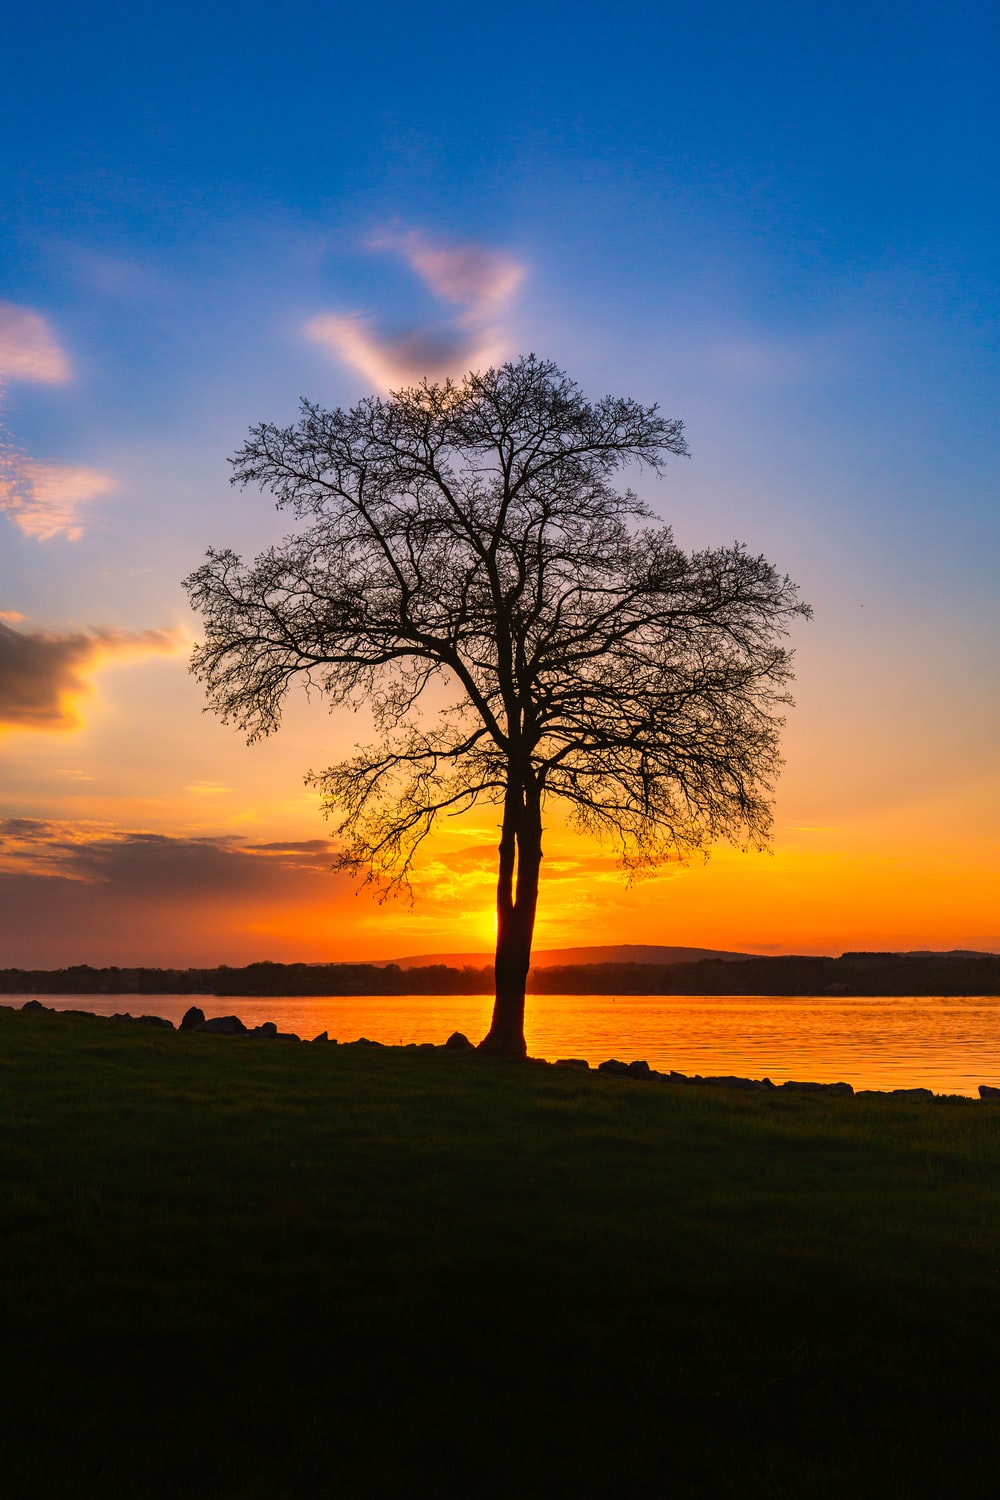 bare tree near body of water